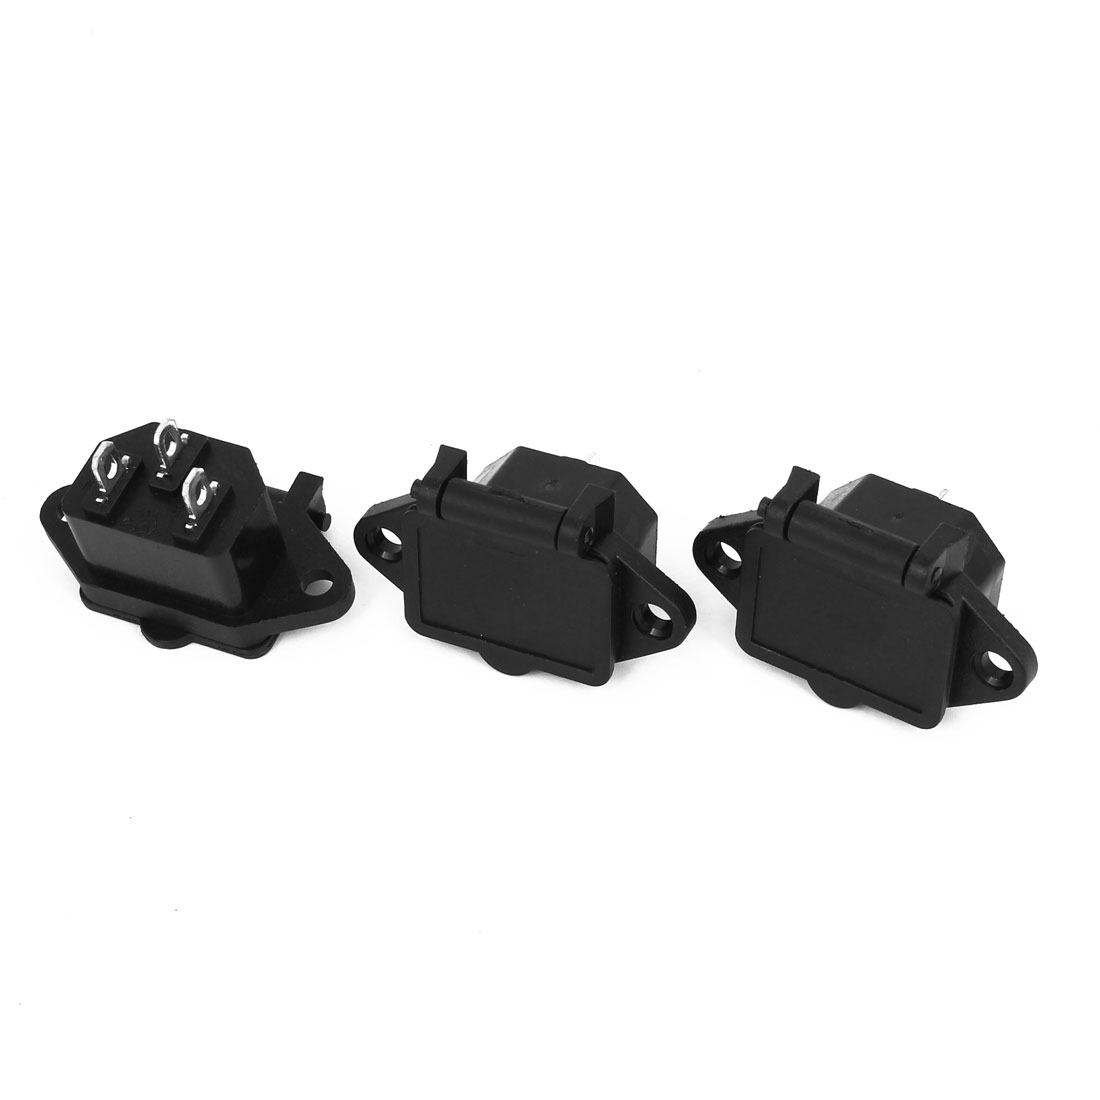 AC 250V 10A 3P IEC320 C14 Power Socket Black 3pcs w Cover